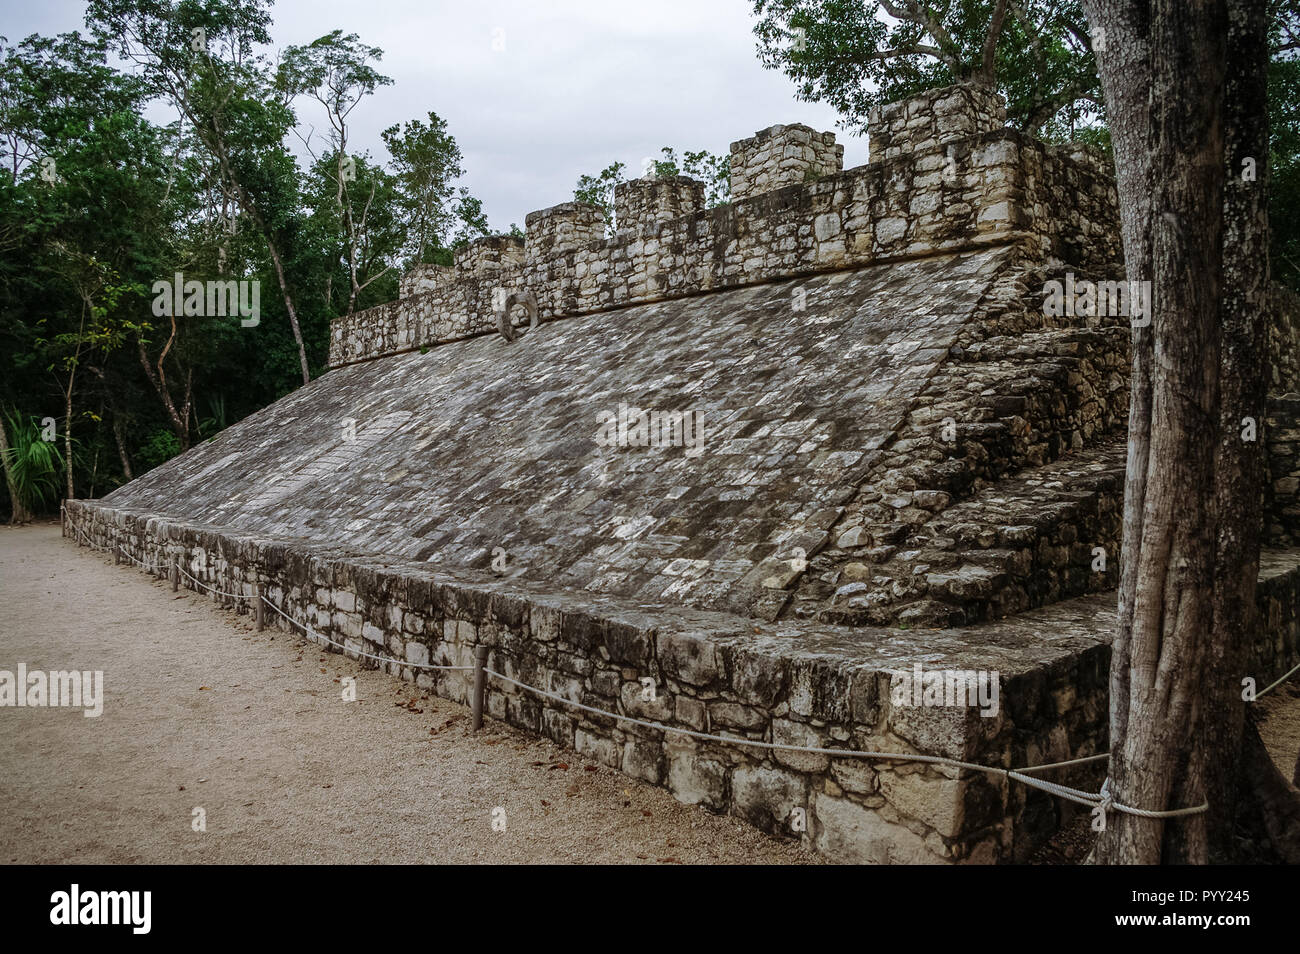 Ball court at the ruins of the Mayan city Coba, Mexico - Stock Image